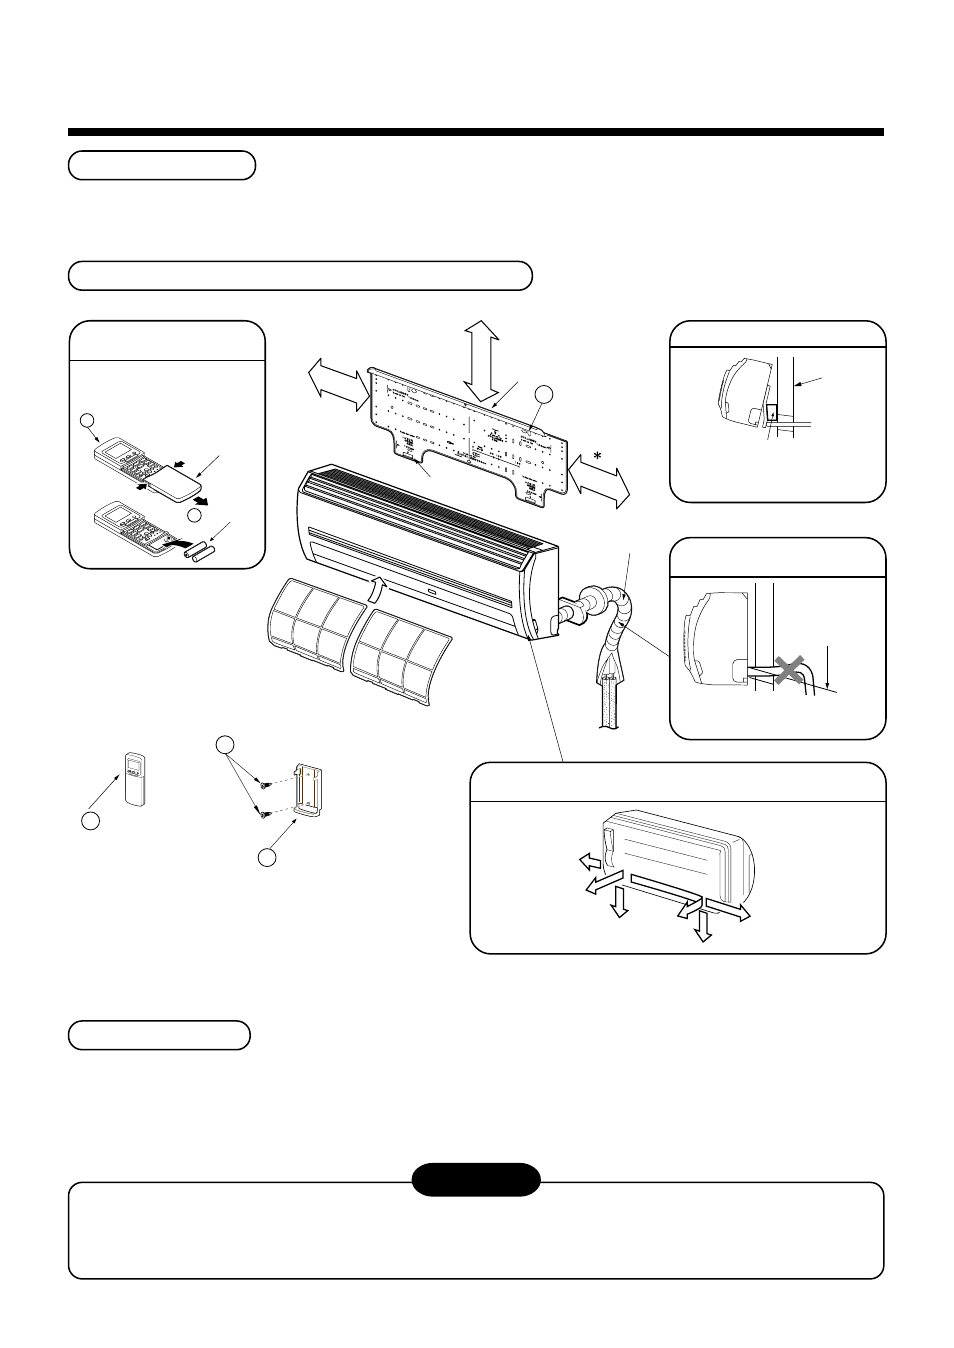 hight resolution of caution installation space installation diagram of indoor and outdoor units toshiba mmk ap0092h user manual page 7 29